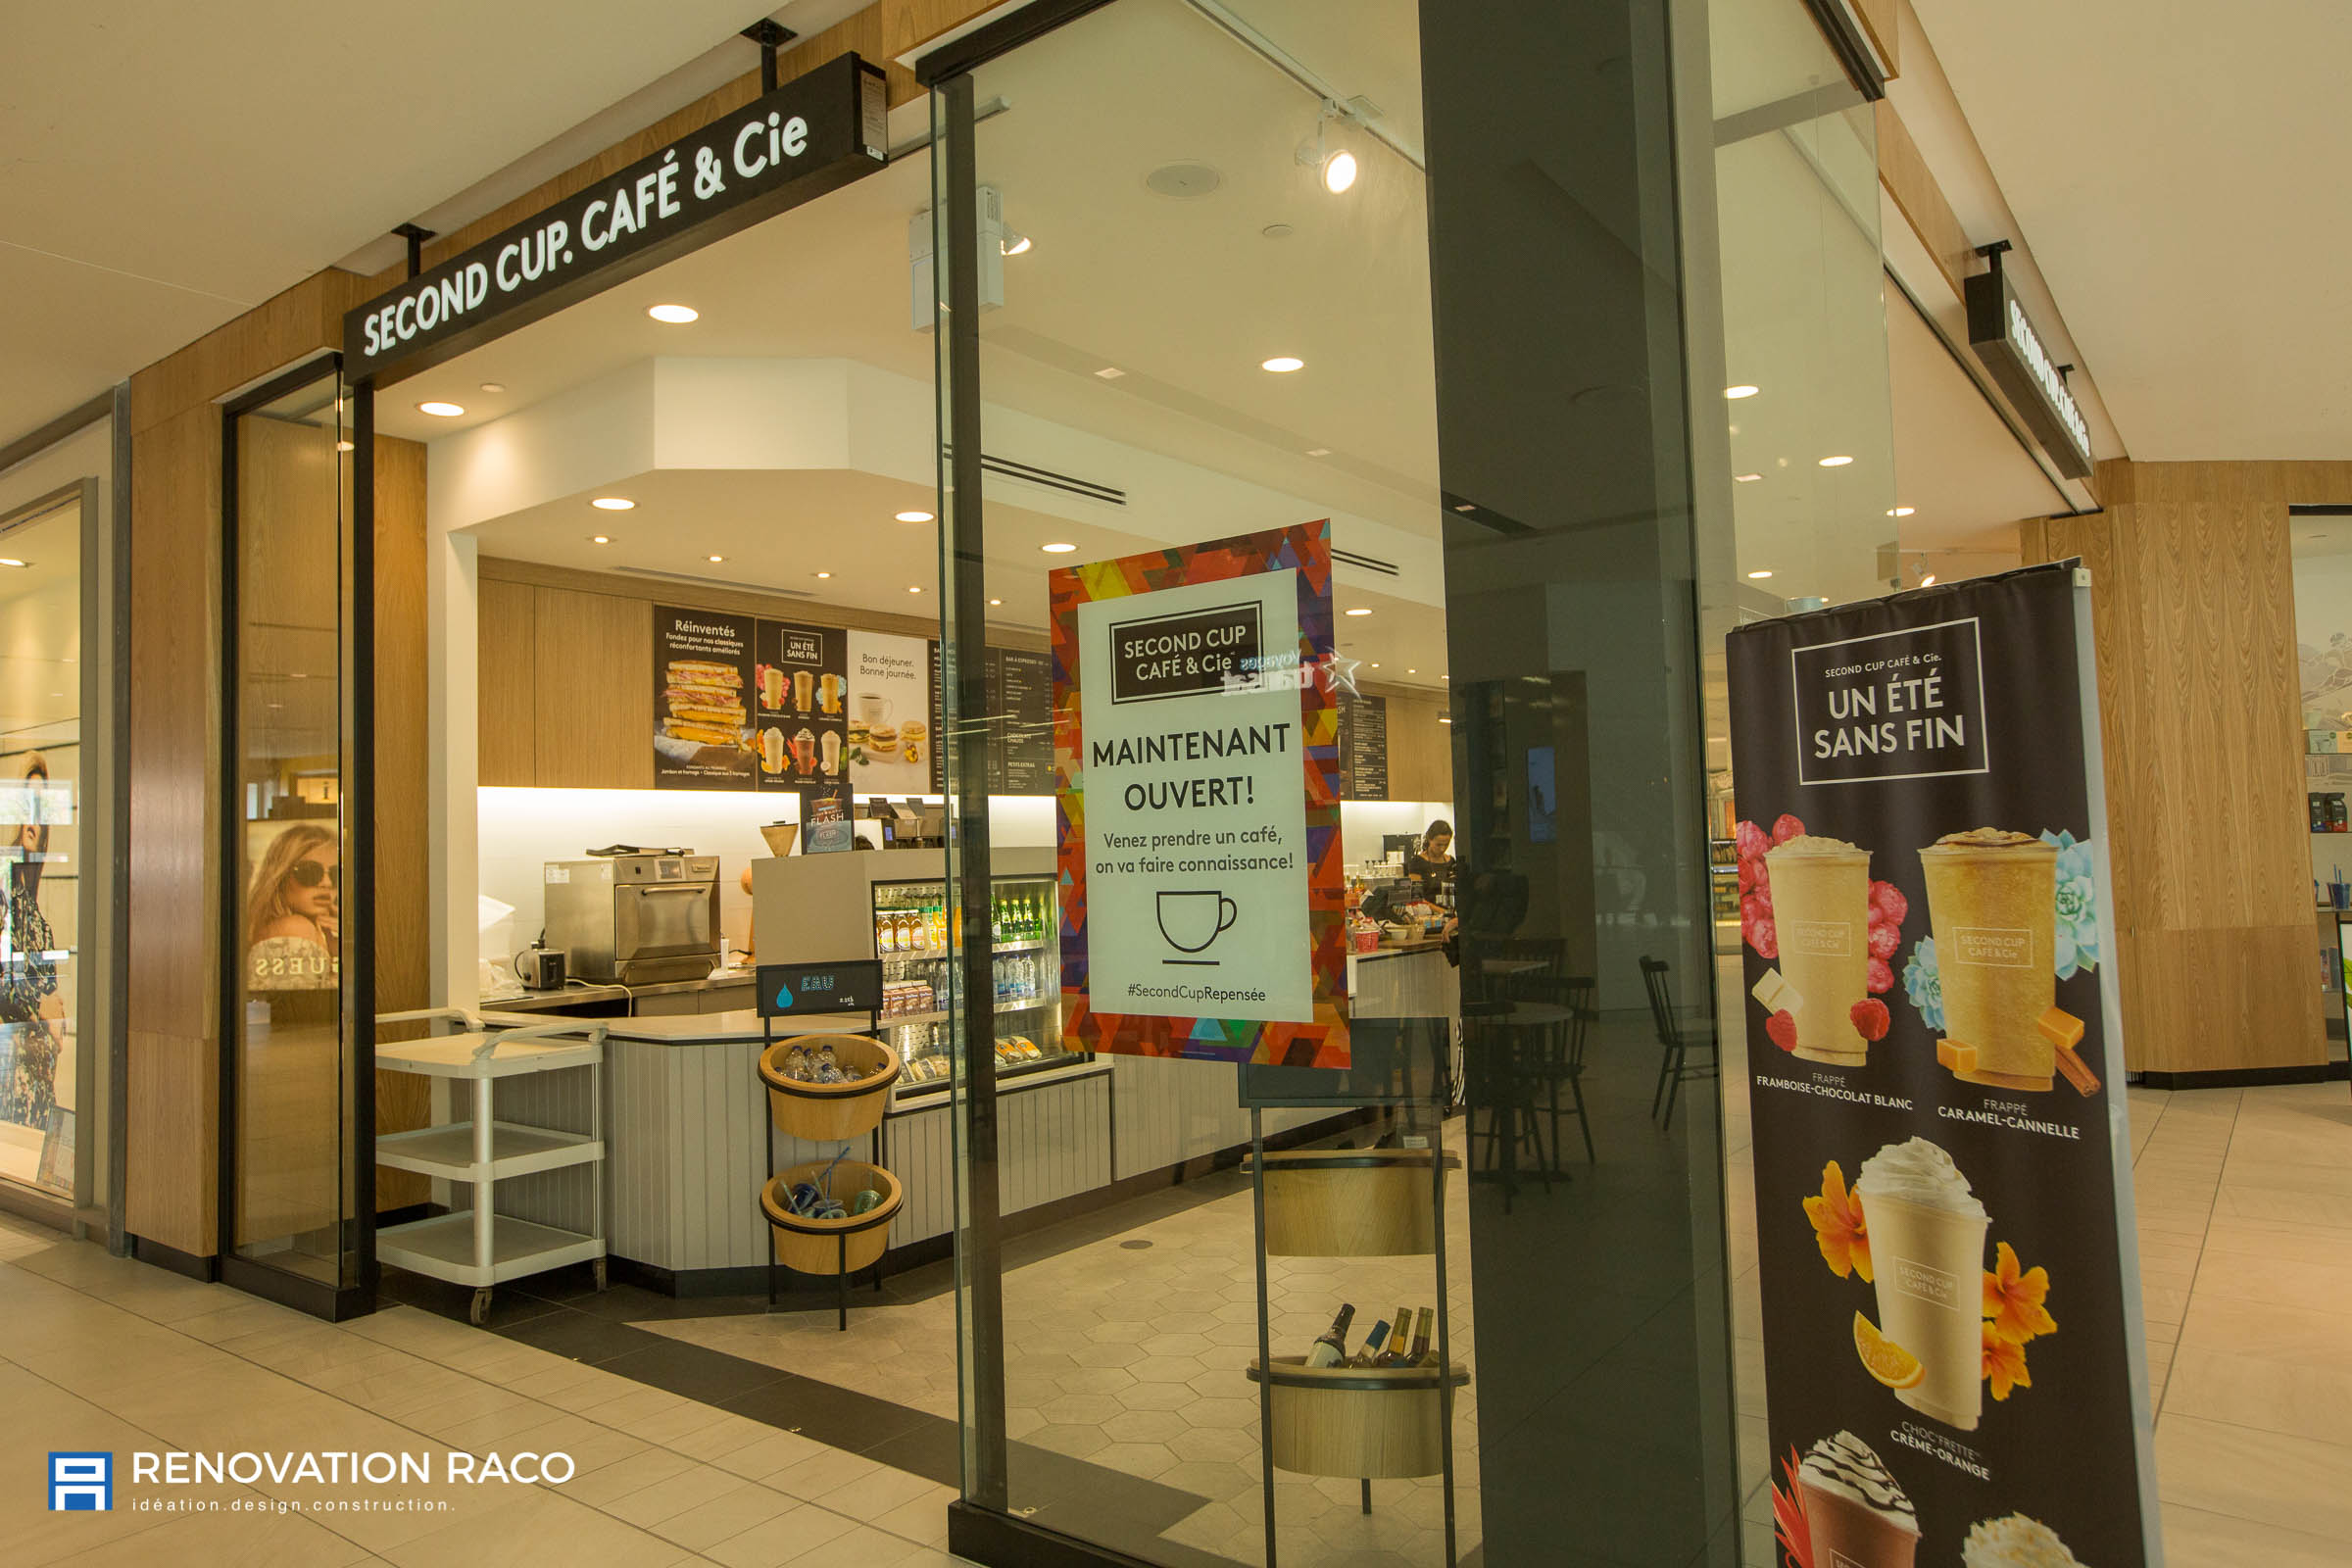 Renovation-Raco-Montreal-Second Cup-04.jpg